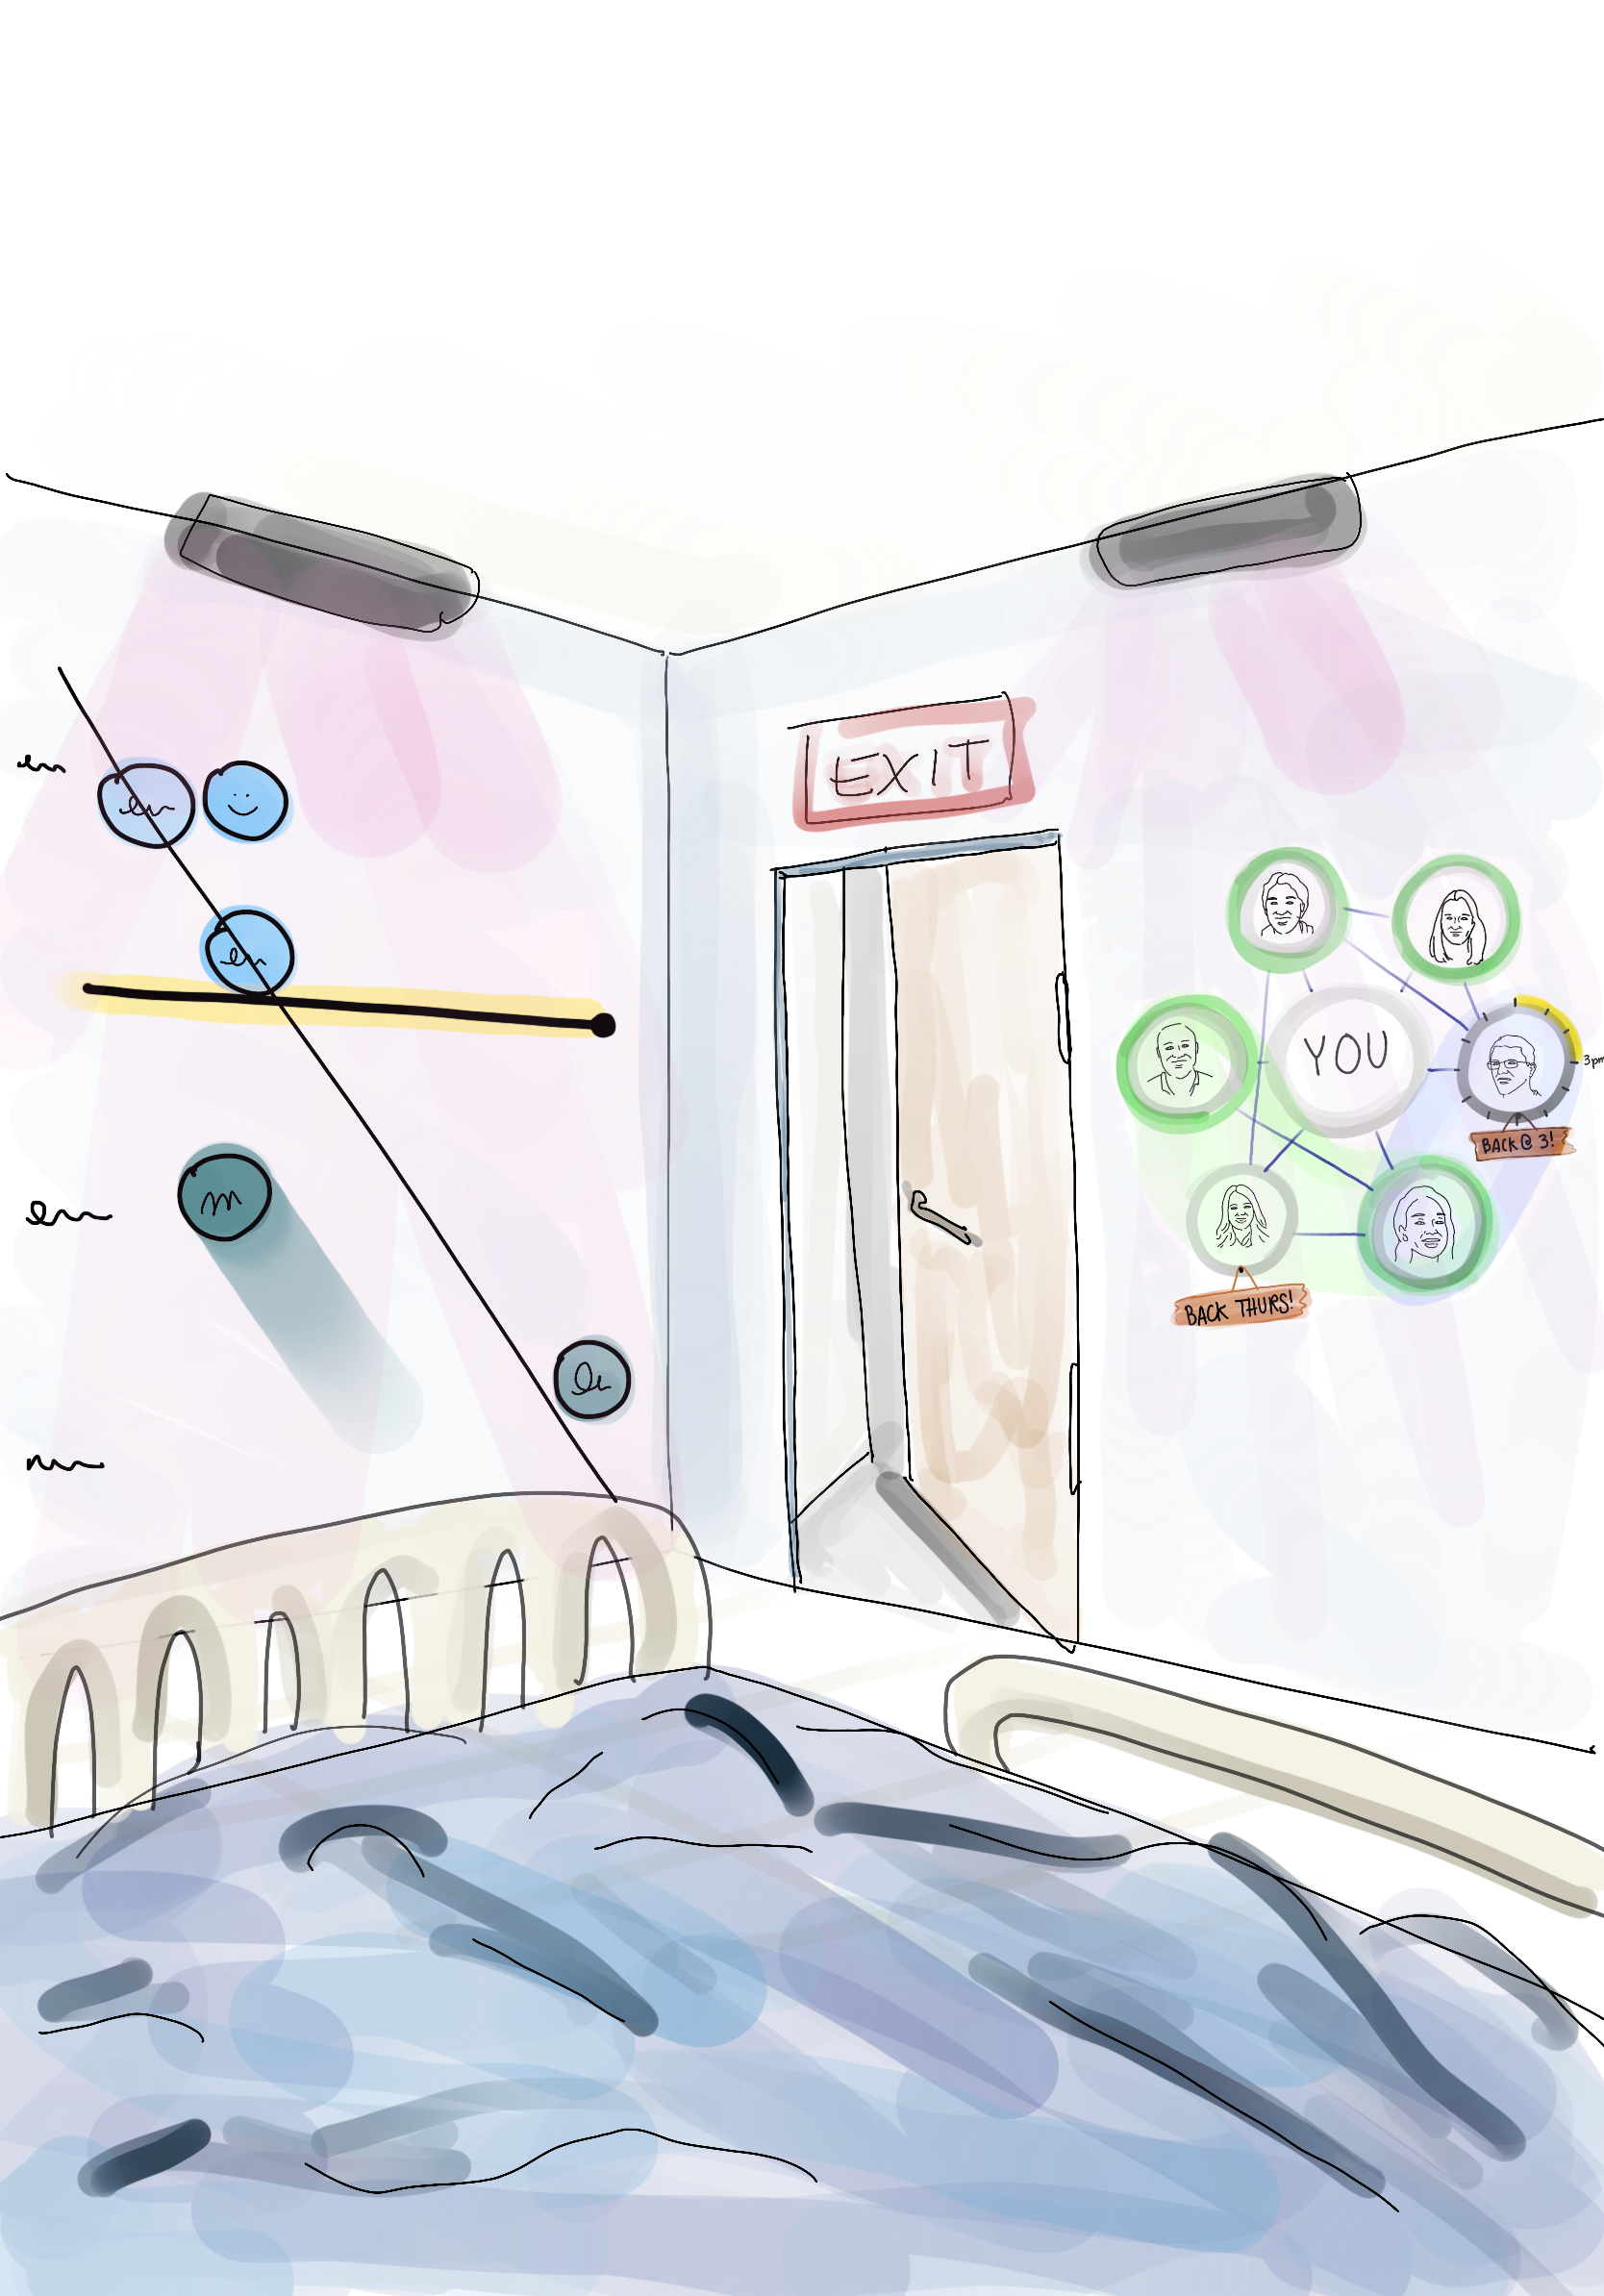 Drawing of what the visualizations might look like from the patient's view